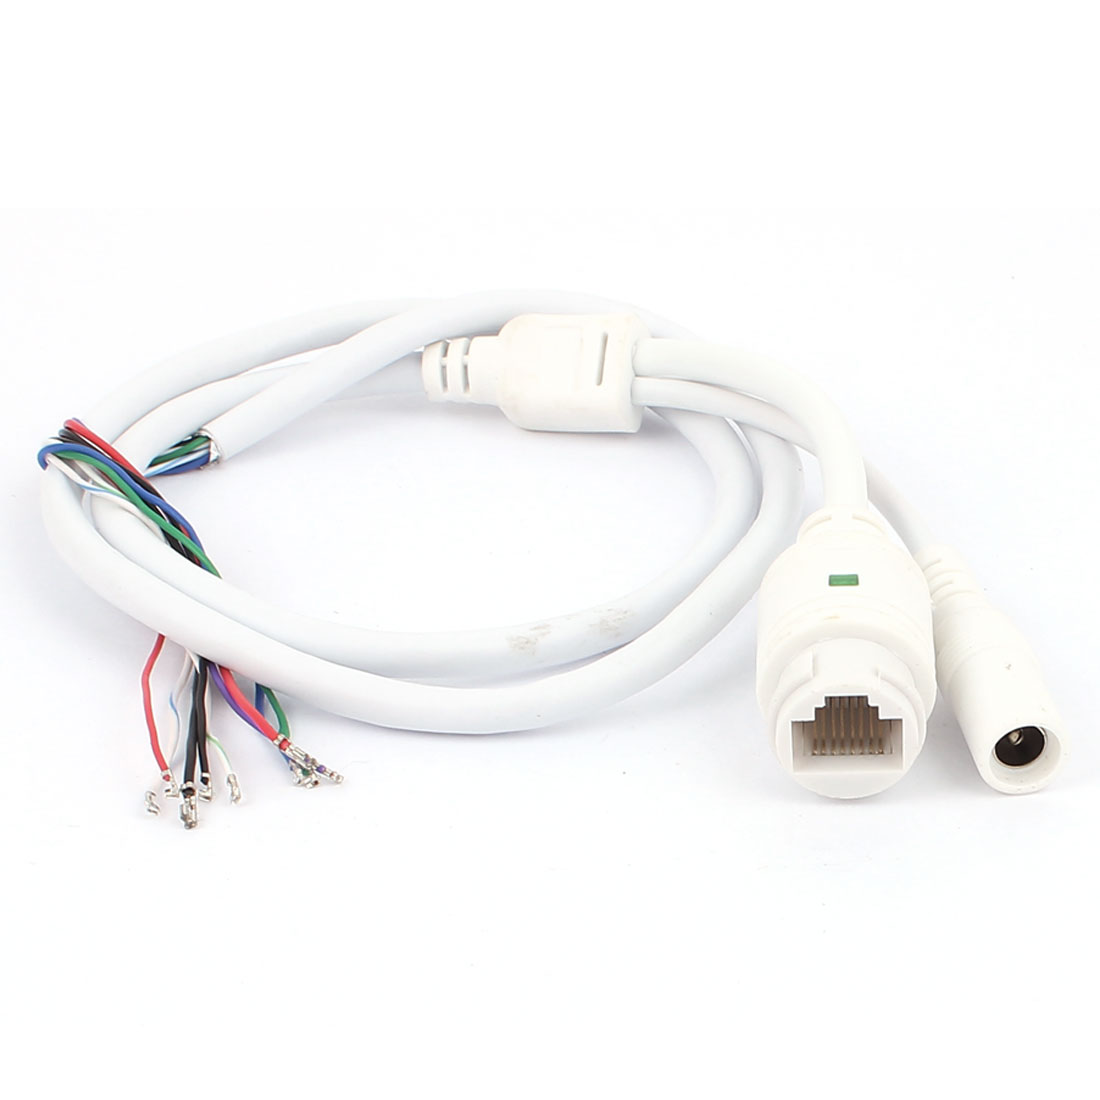 Power Supply Over Ethernet POE Network Cable Adapter Injector Splitter